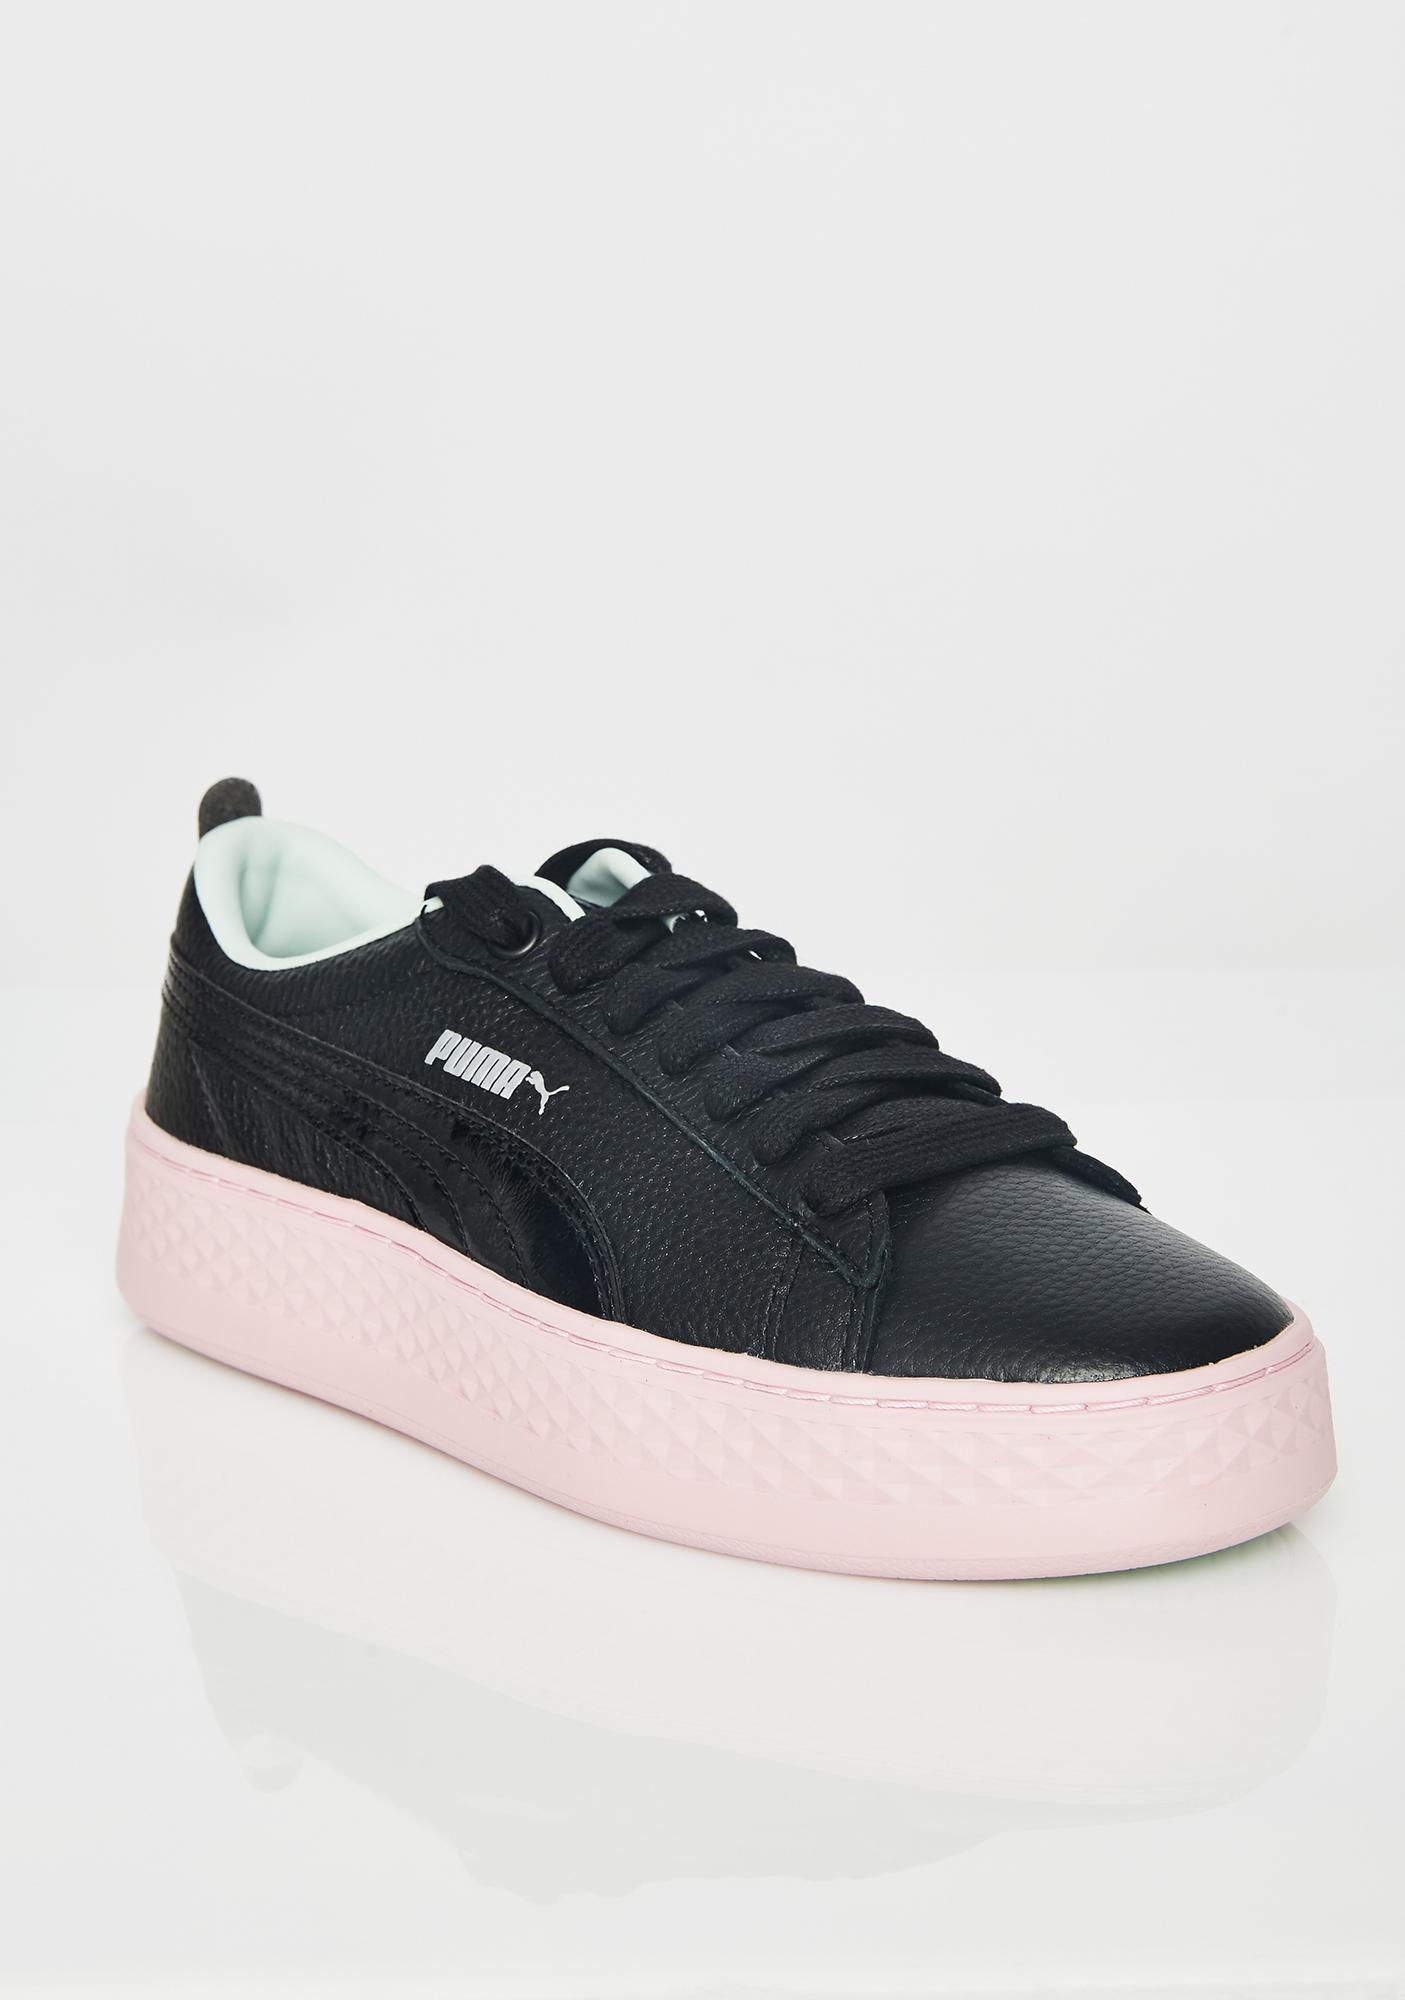 PUMA Smash Platform Trailblazer Sneakers